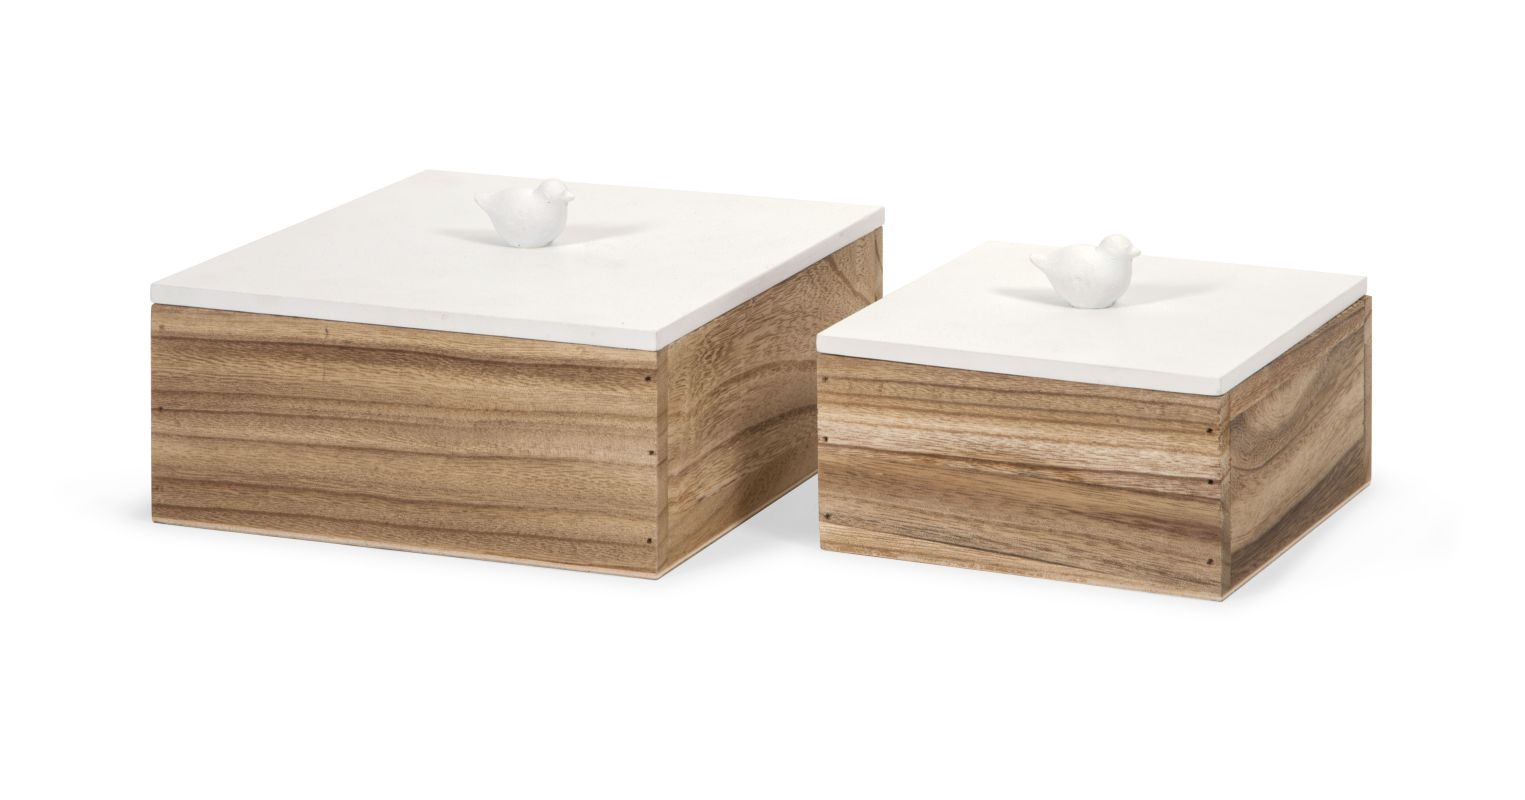 IMAX Home 97400-2 Mochrie Lidded Boxes - Set of 2 Home Decor Boxes